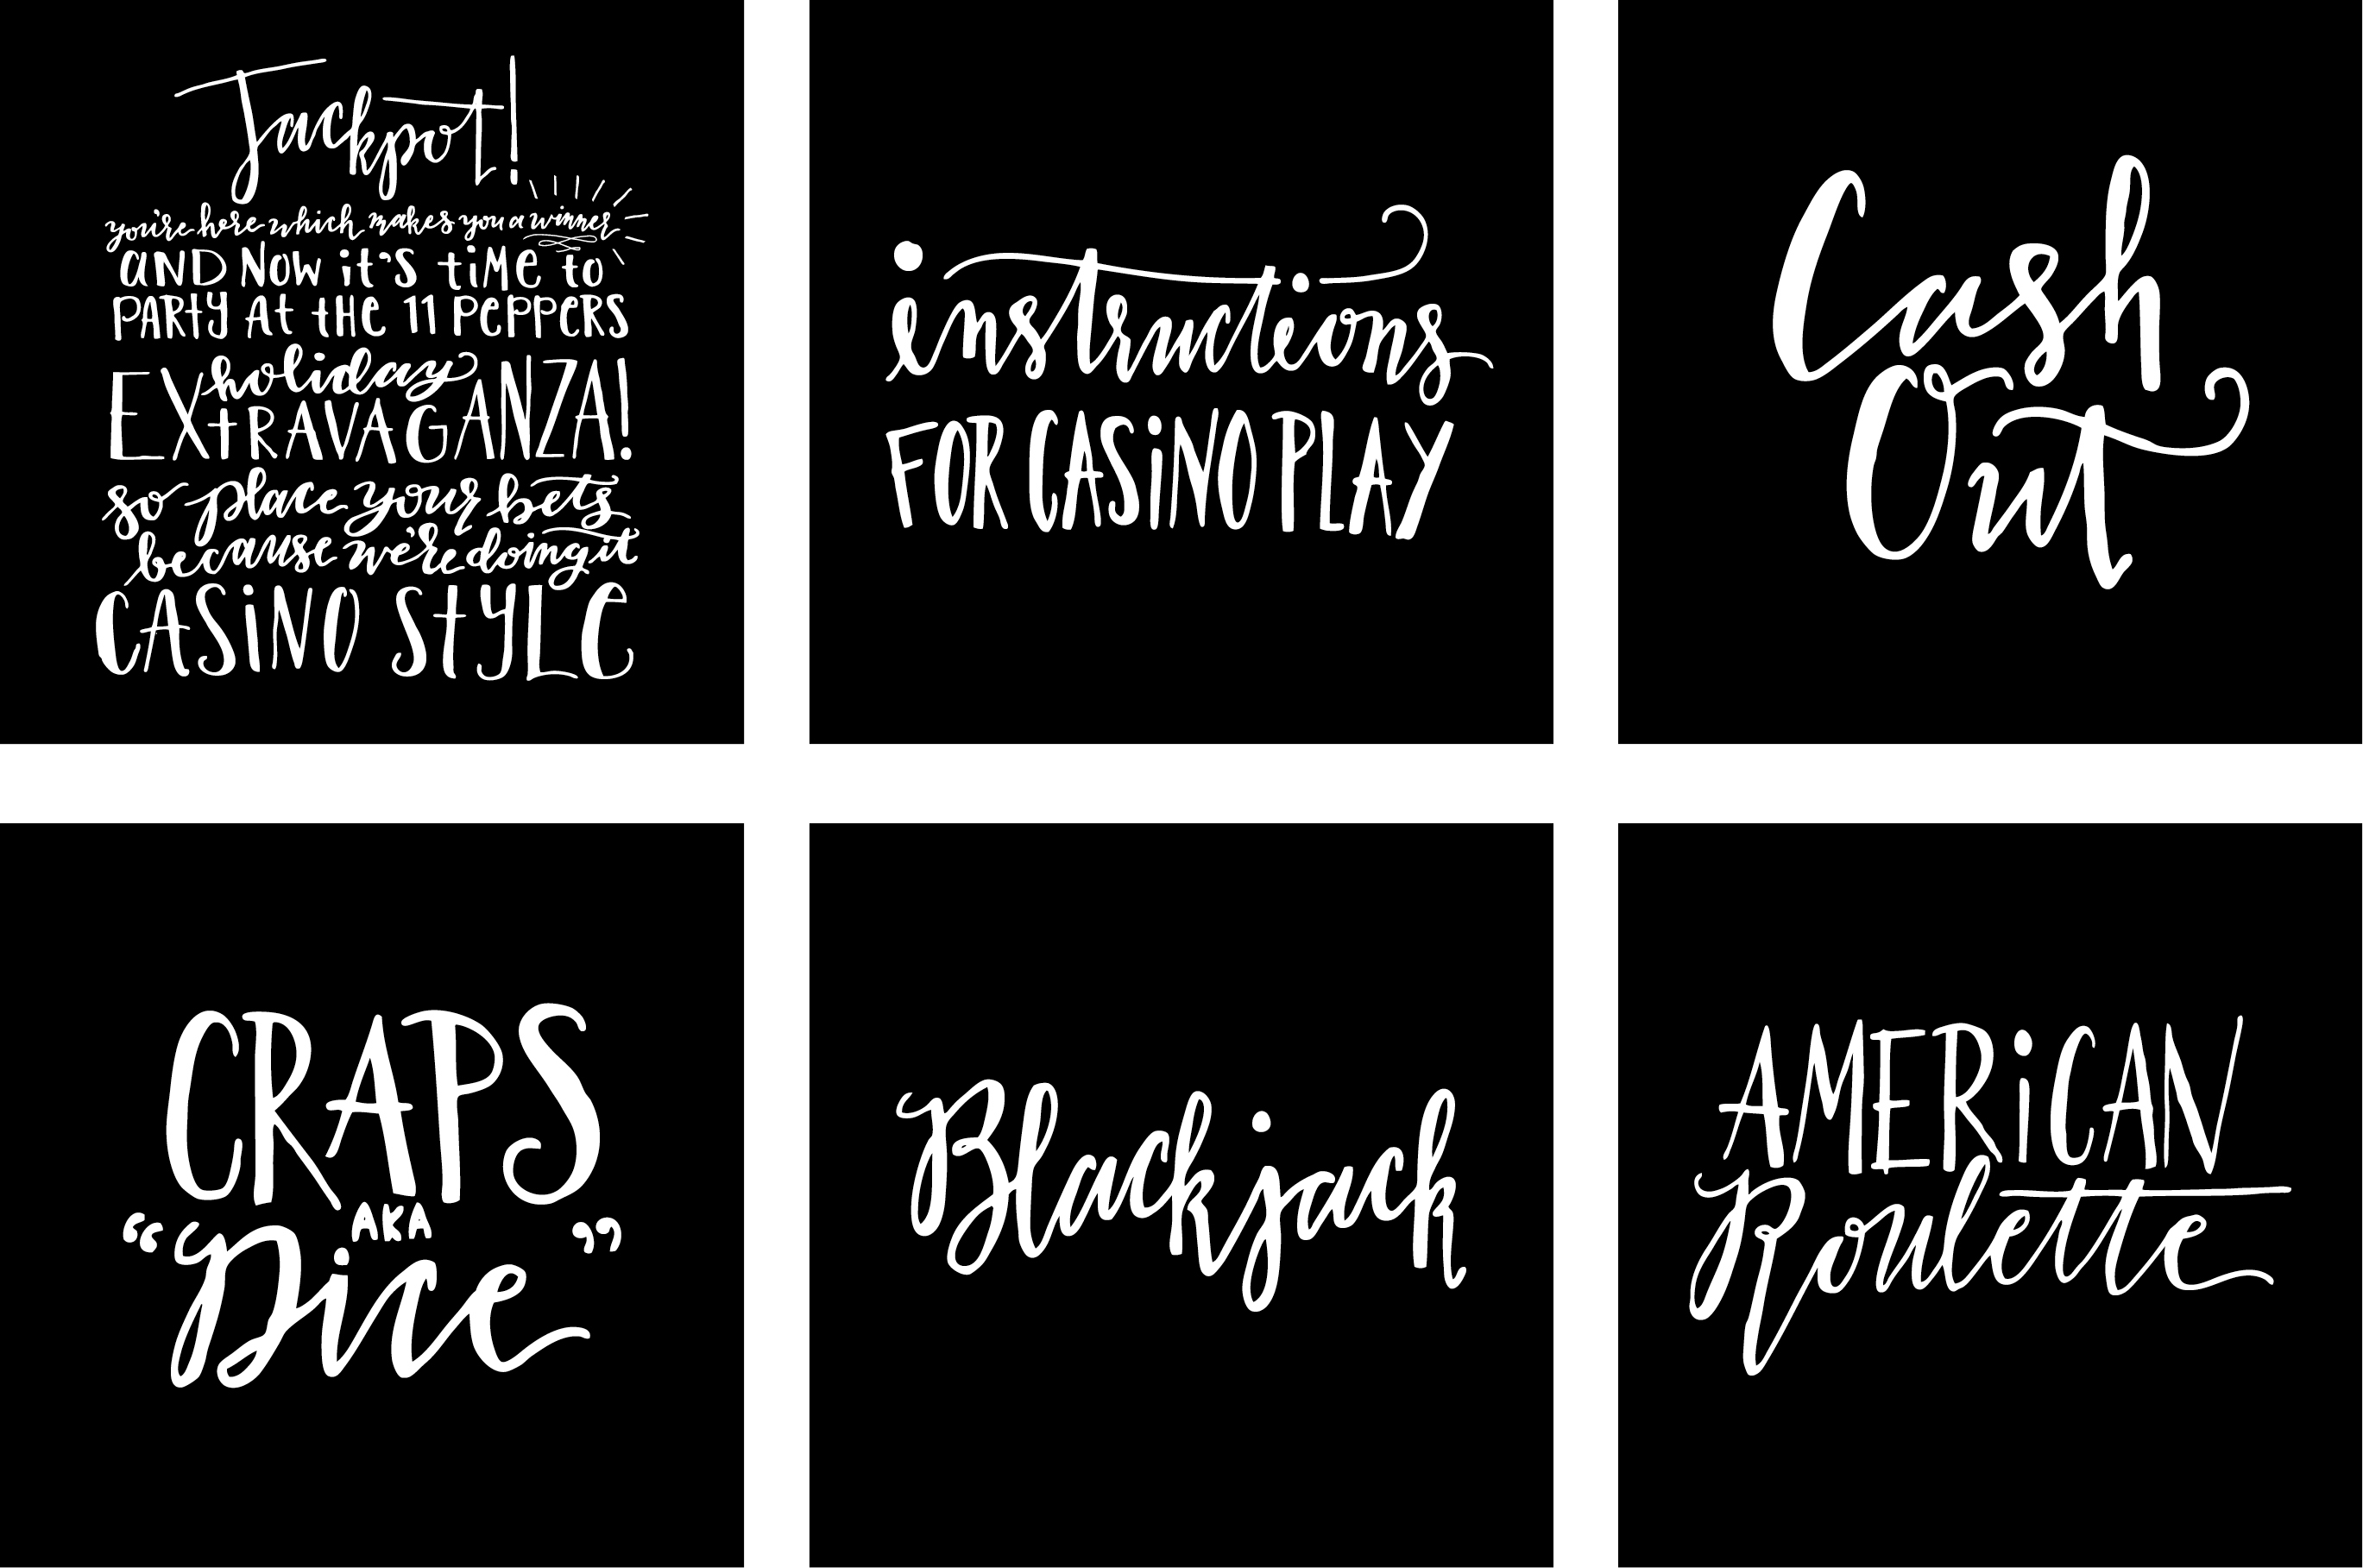 Hand Lettering Designs From the 2018 Holiday Season: 11 Pepper Graphics